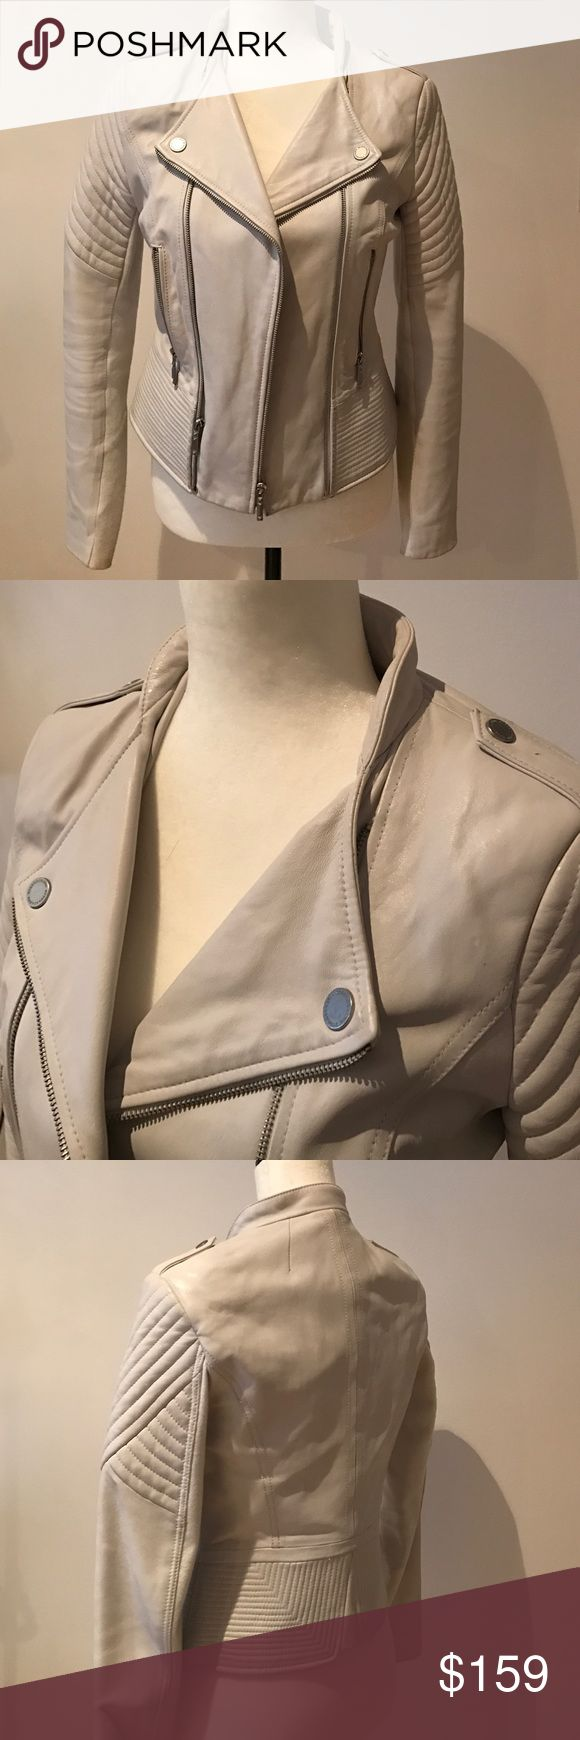 BCBG White Real Leather Jacket XS Excellent conditions | BCBG White Real Leather Jacket XS BCBGMaxAzria Jackets & Coats